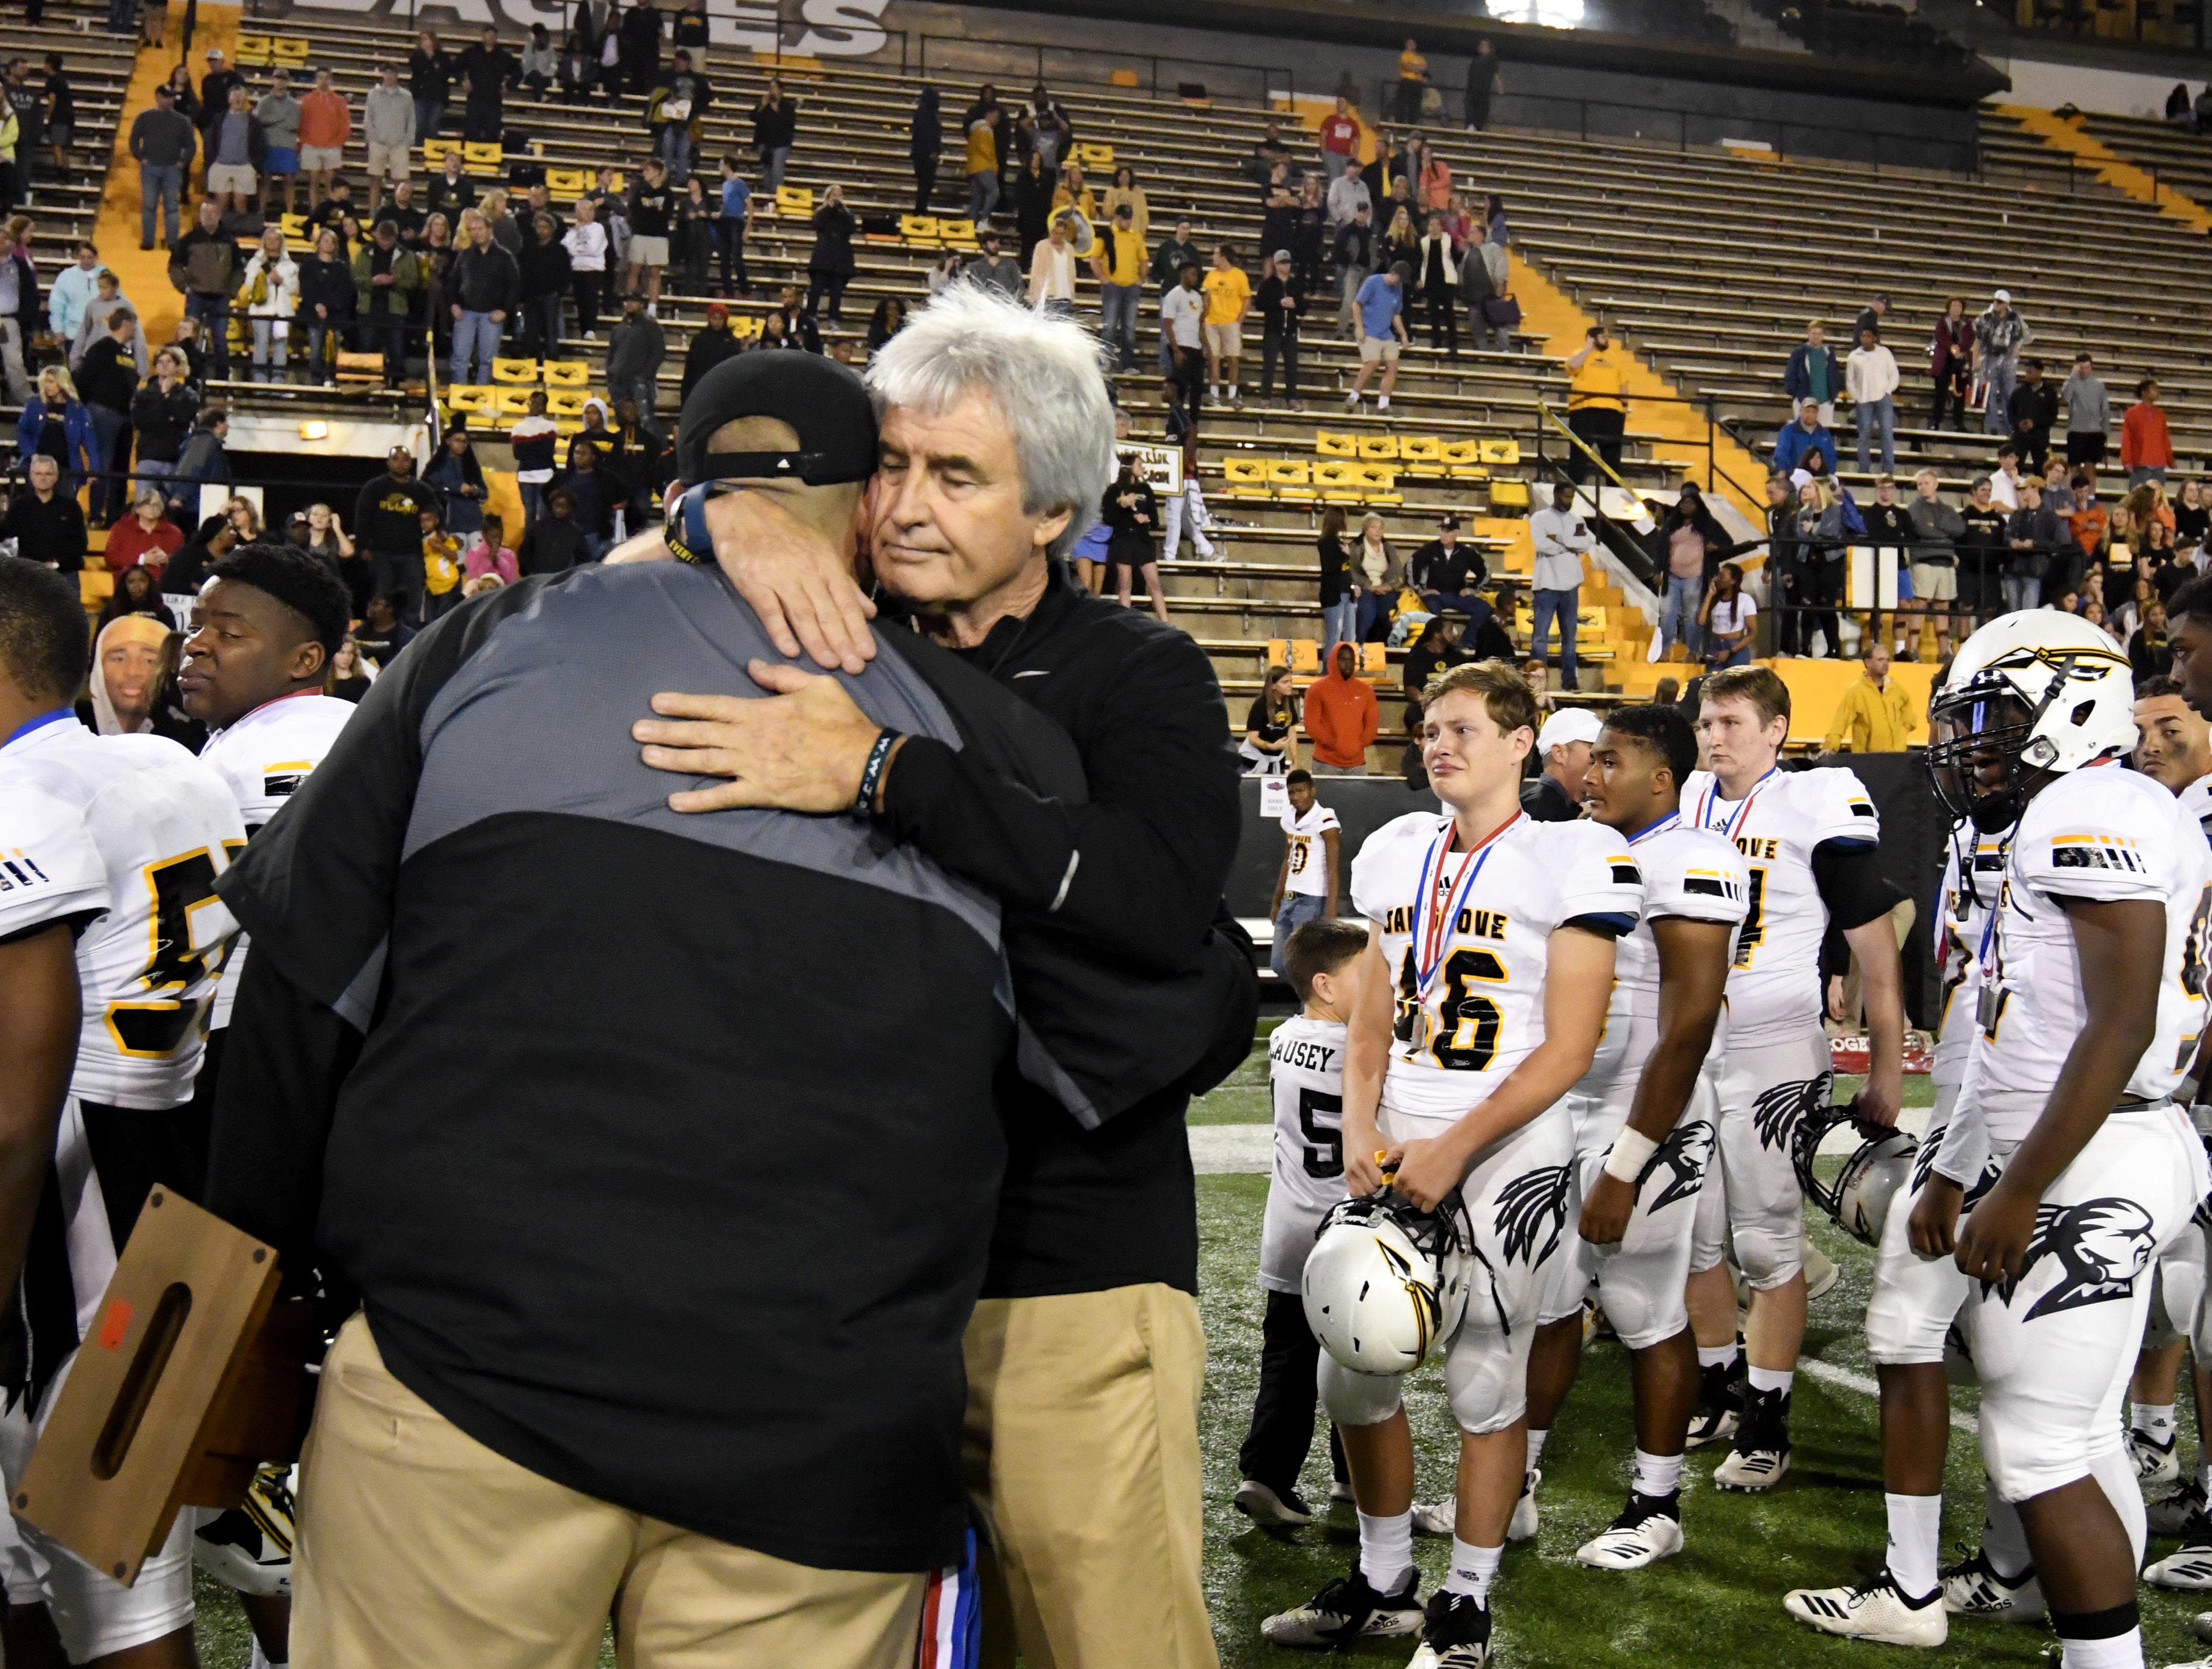 Retired Oak Grove coach Nevil Barr comforts current head coach Drew Casey after losing to Horn Lake  in the 6A state championship game at M.M. Roberts Stadium in Hattiesburg on Friday, November 30, 2018.